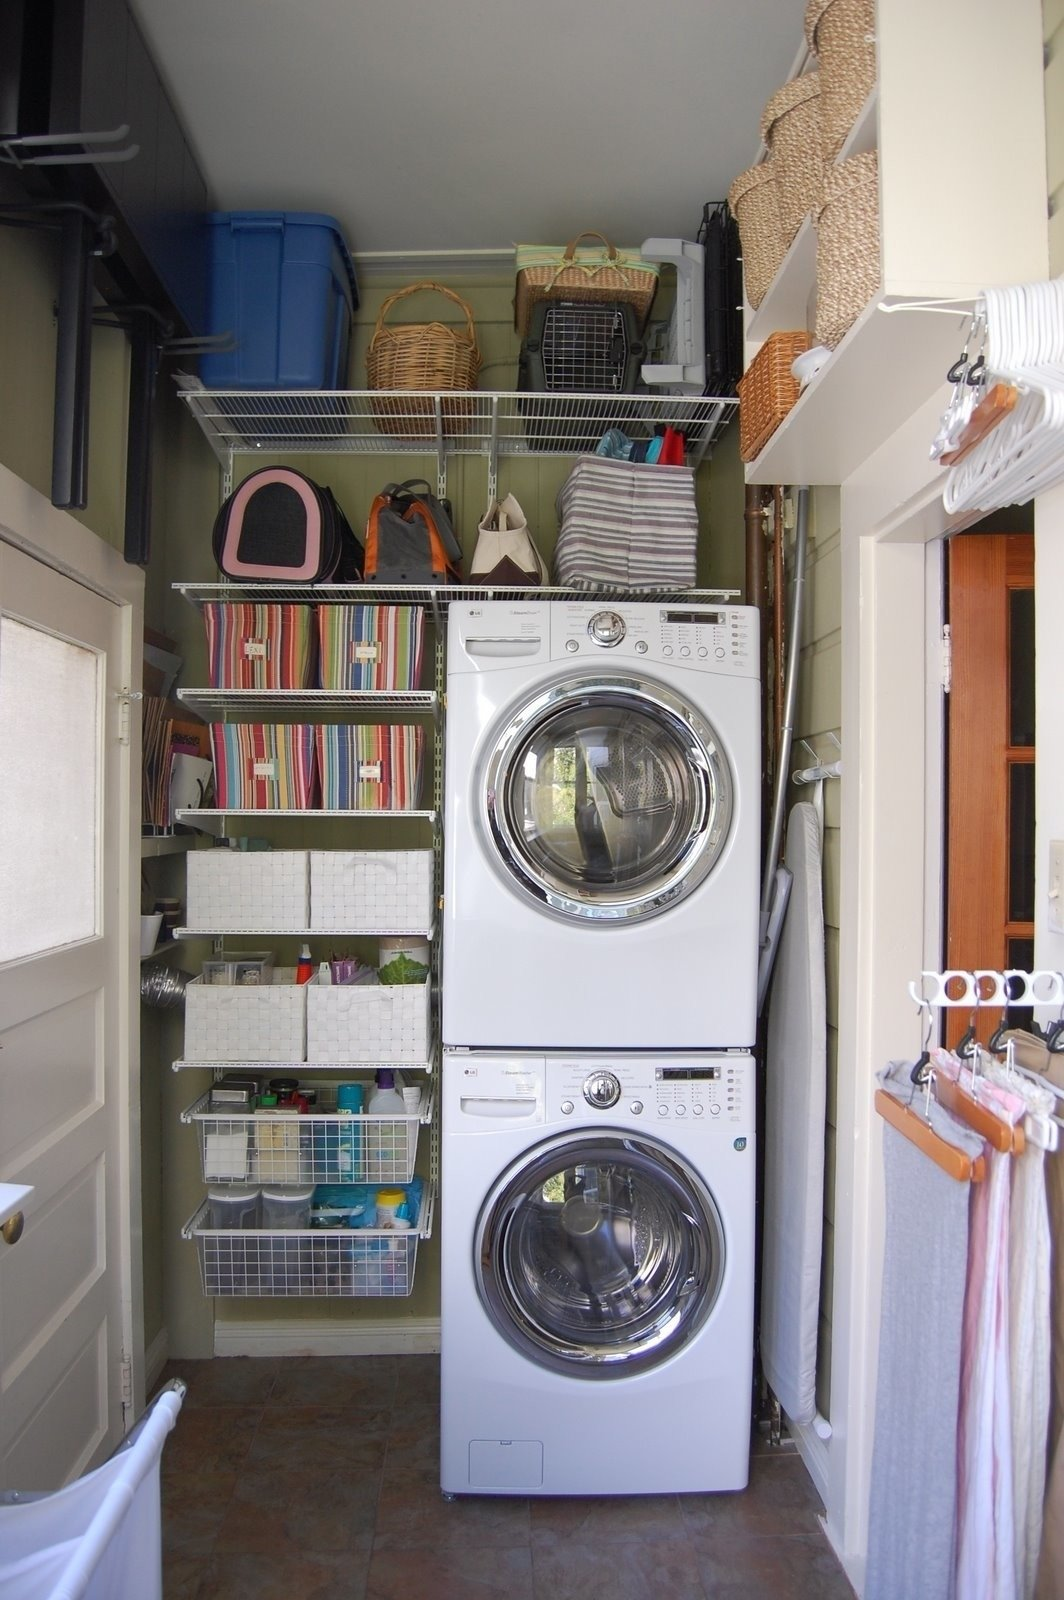 10 Perfect Laundry Room Ideas Small Space small space laundry room